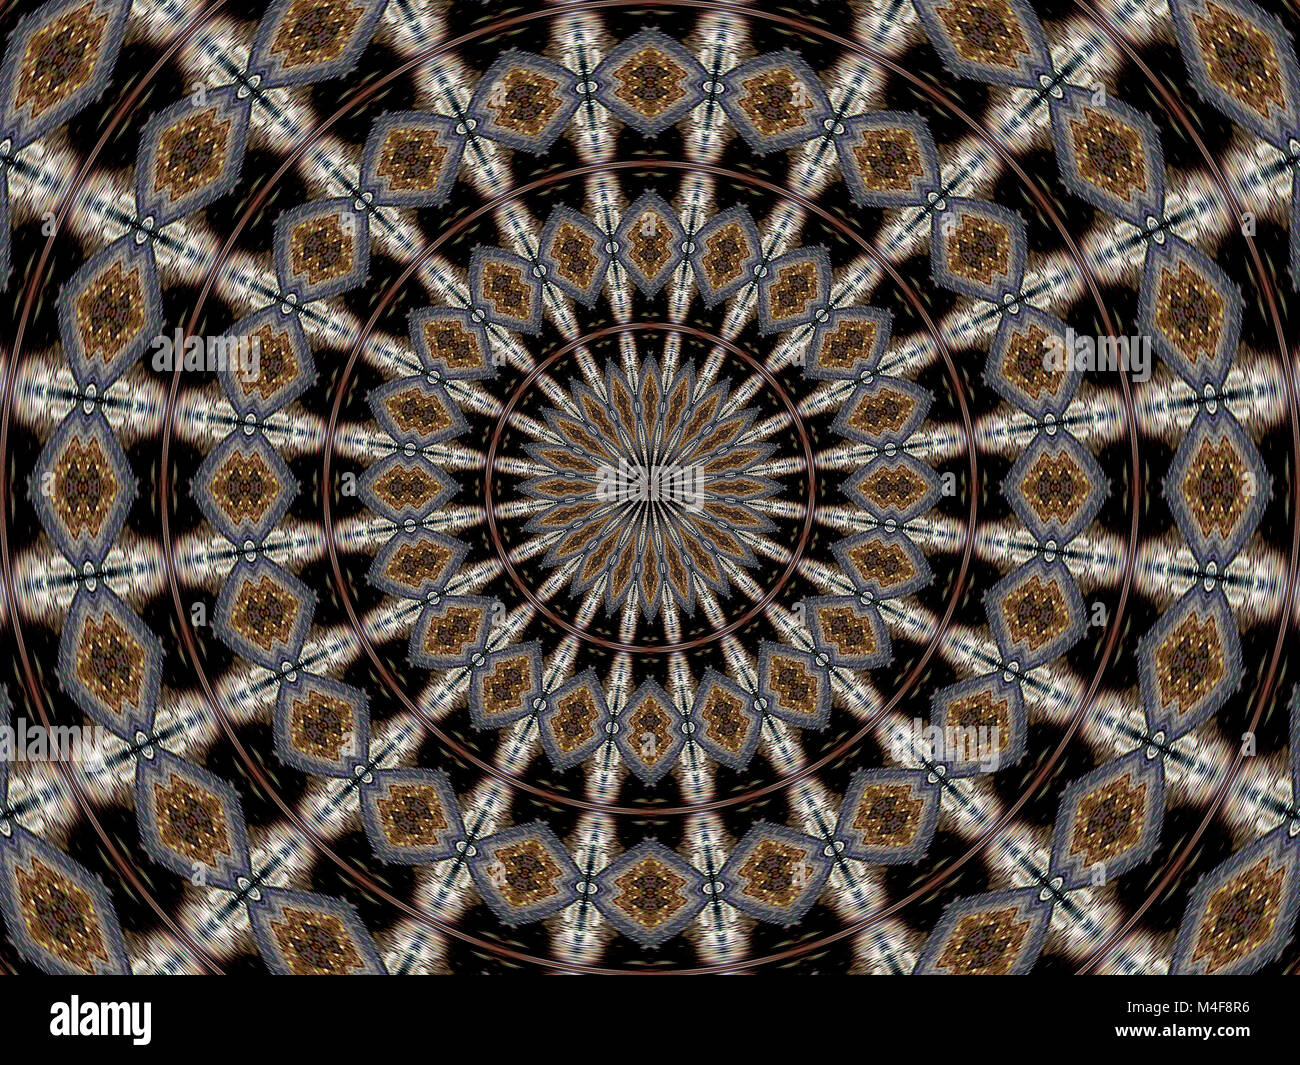 Kaleidoscope in brown tones - Stock Image